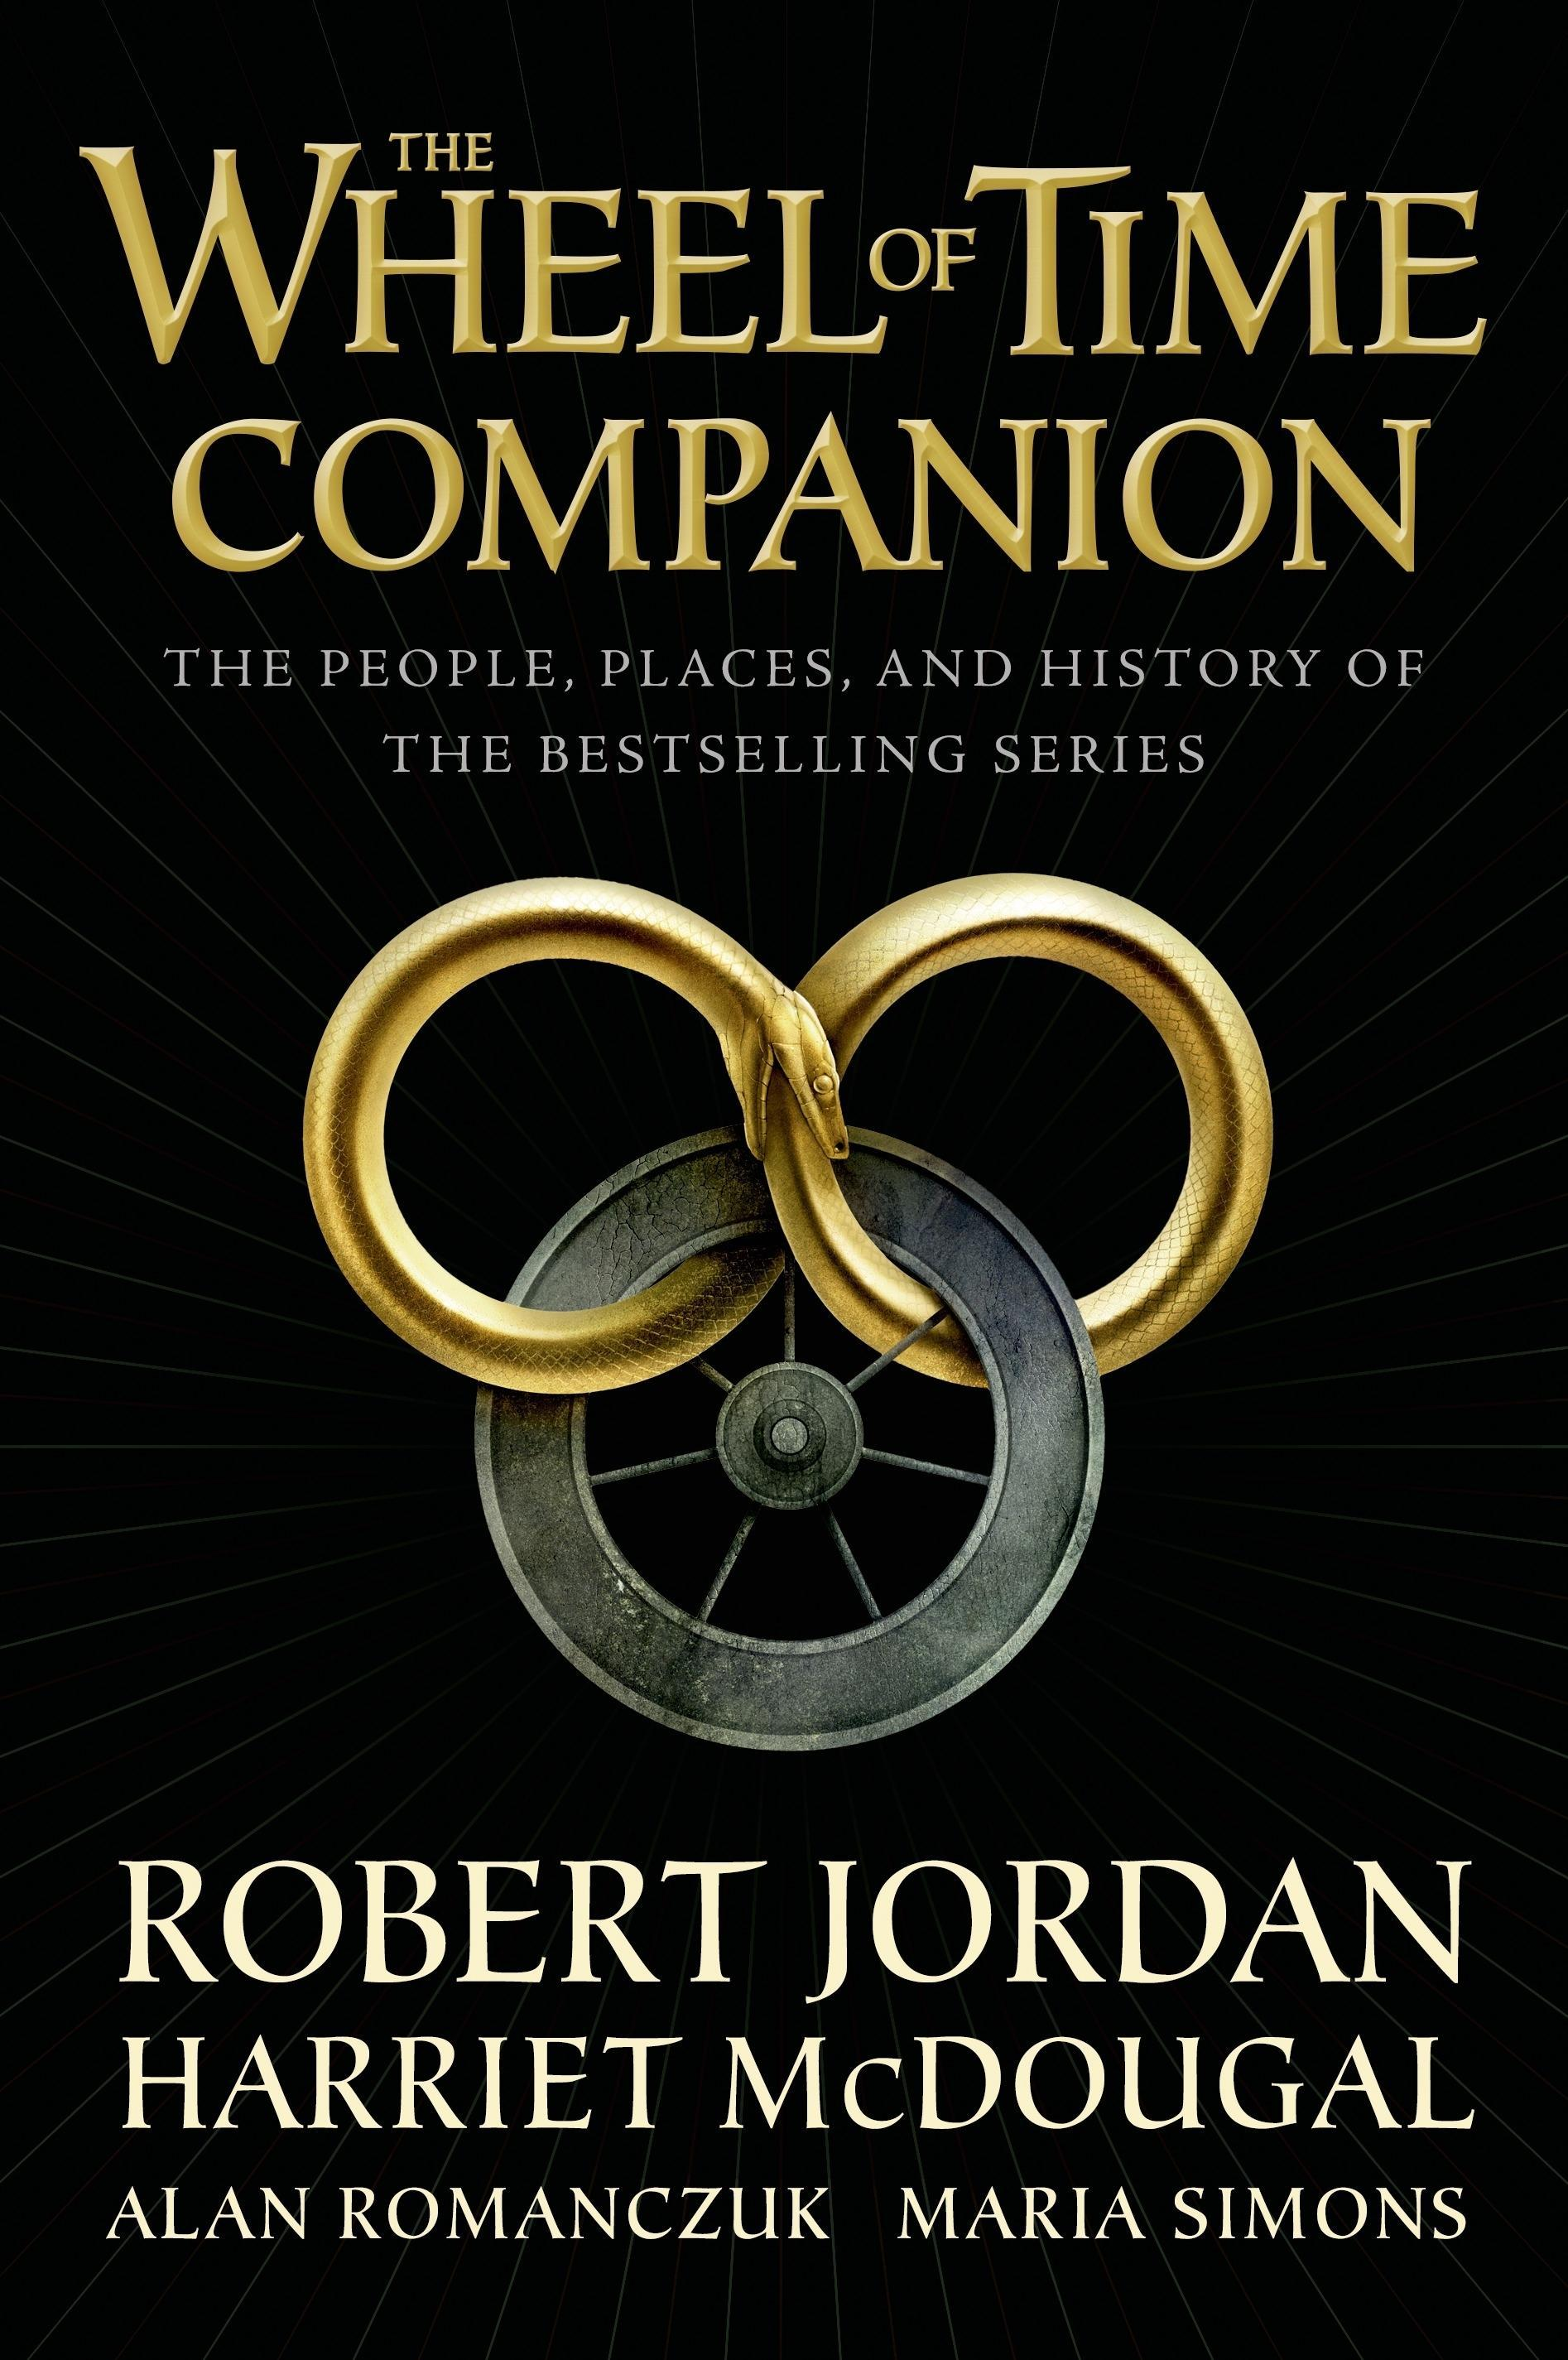 The Wheel of Time Companion, Robert Jordan